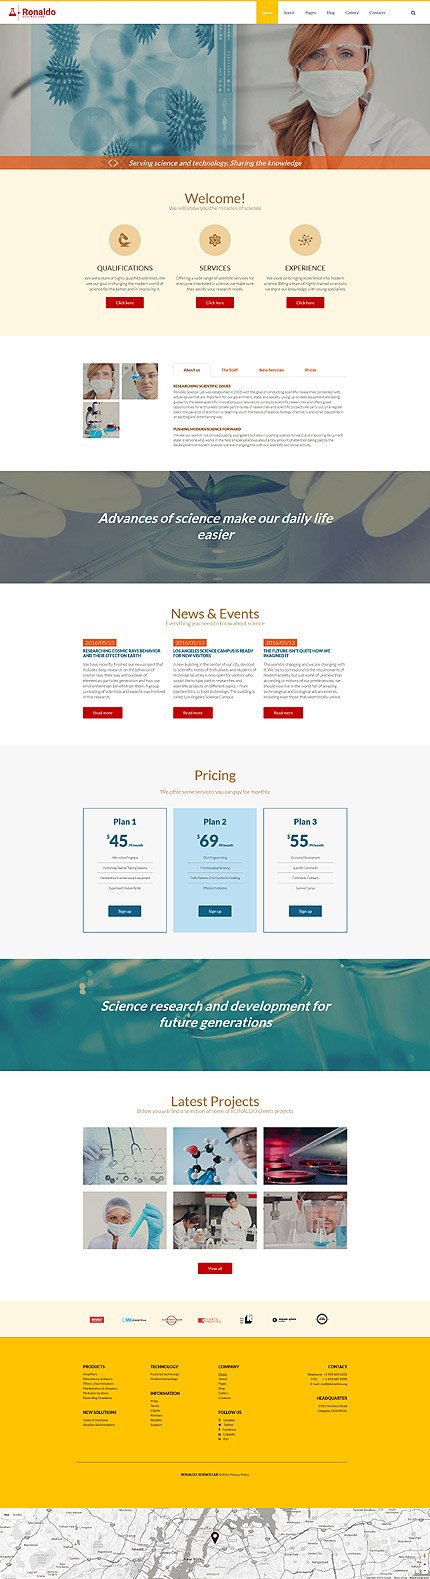 Joomla Theme/Template 57553 Main Page Screenshot